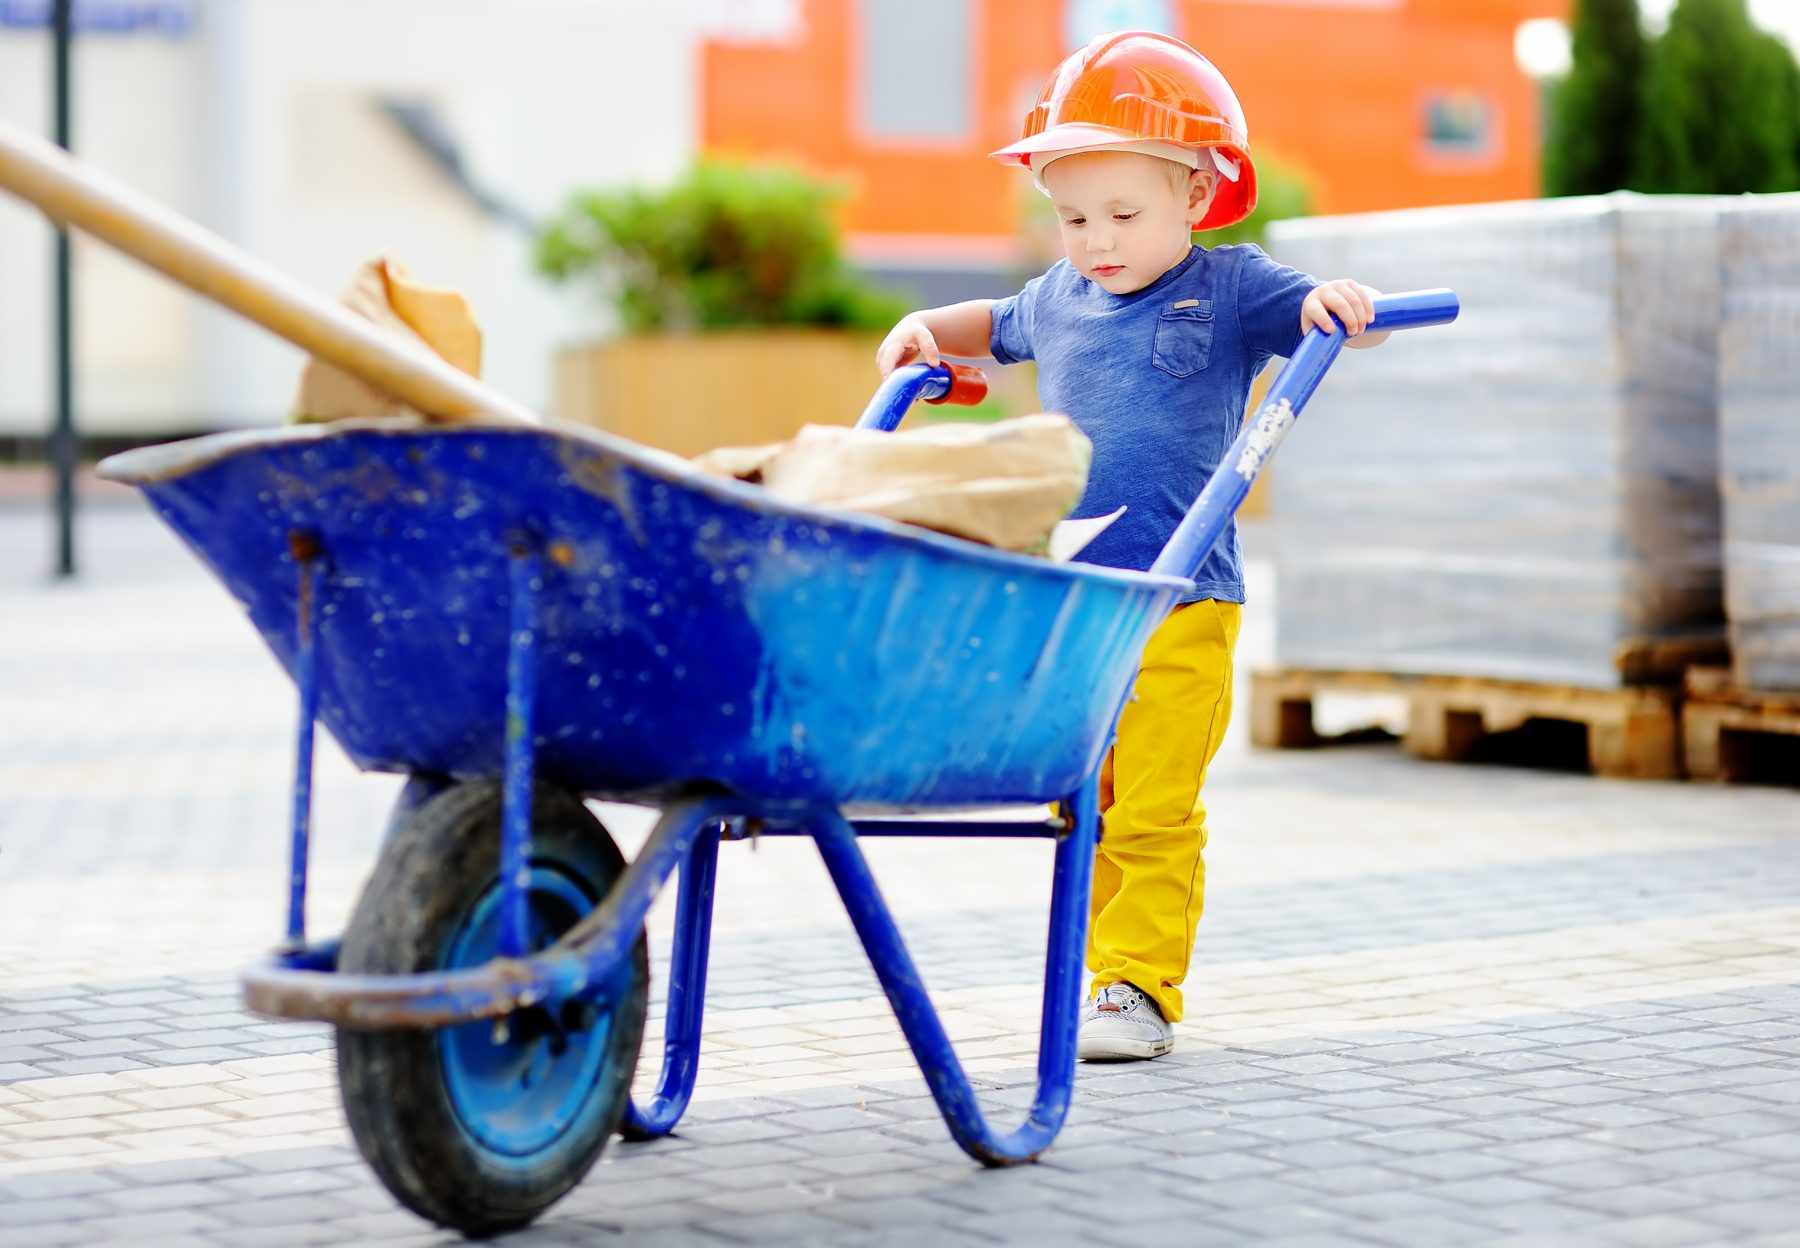 General Liability Insurance For Contractors: Here Is Why You Need It